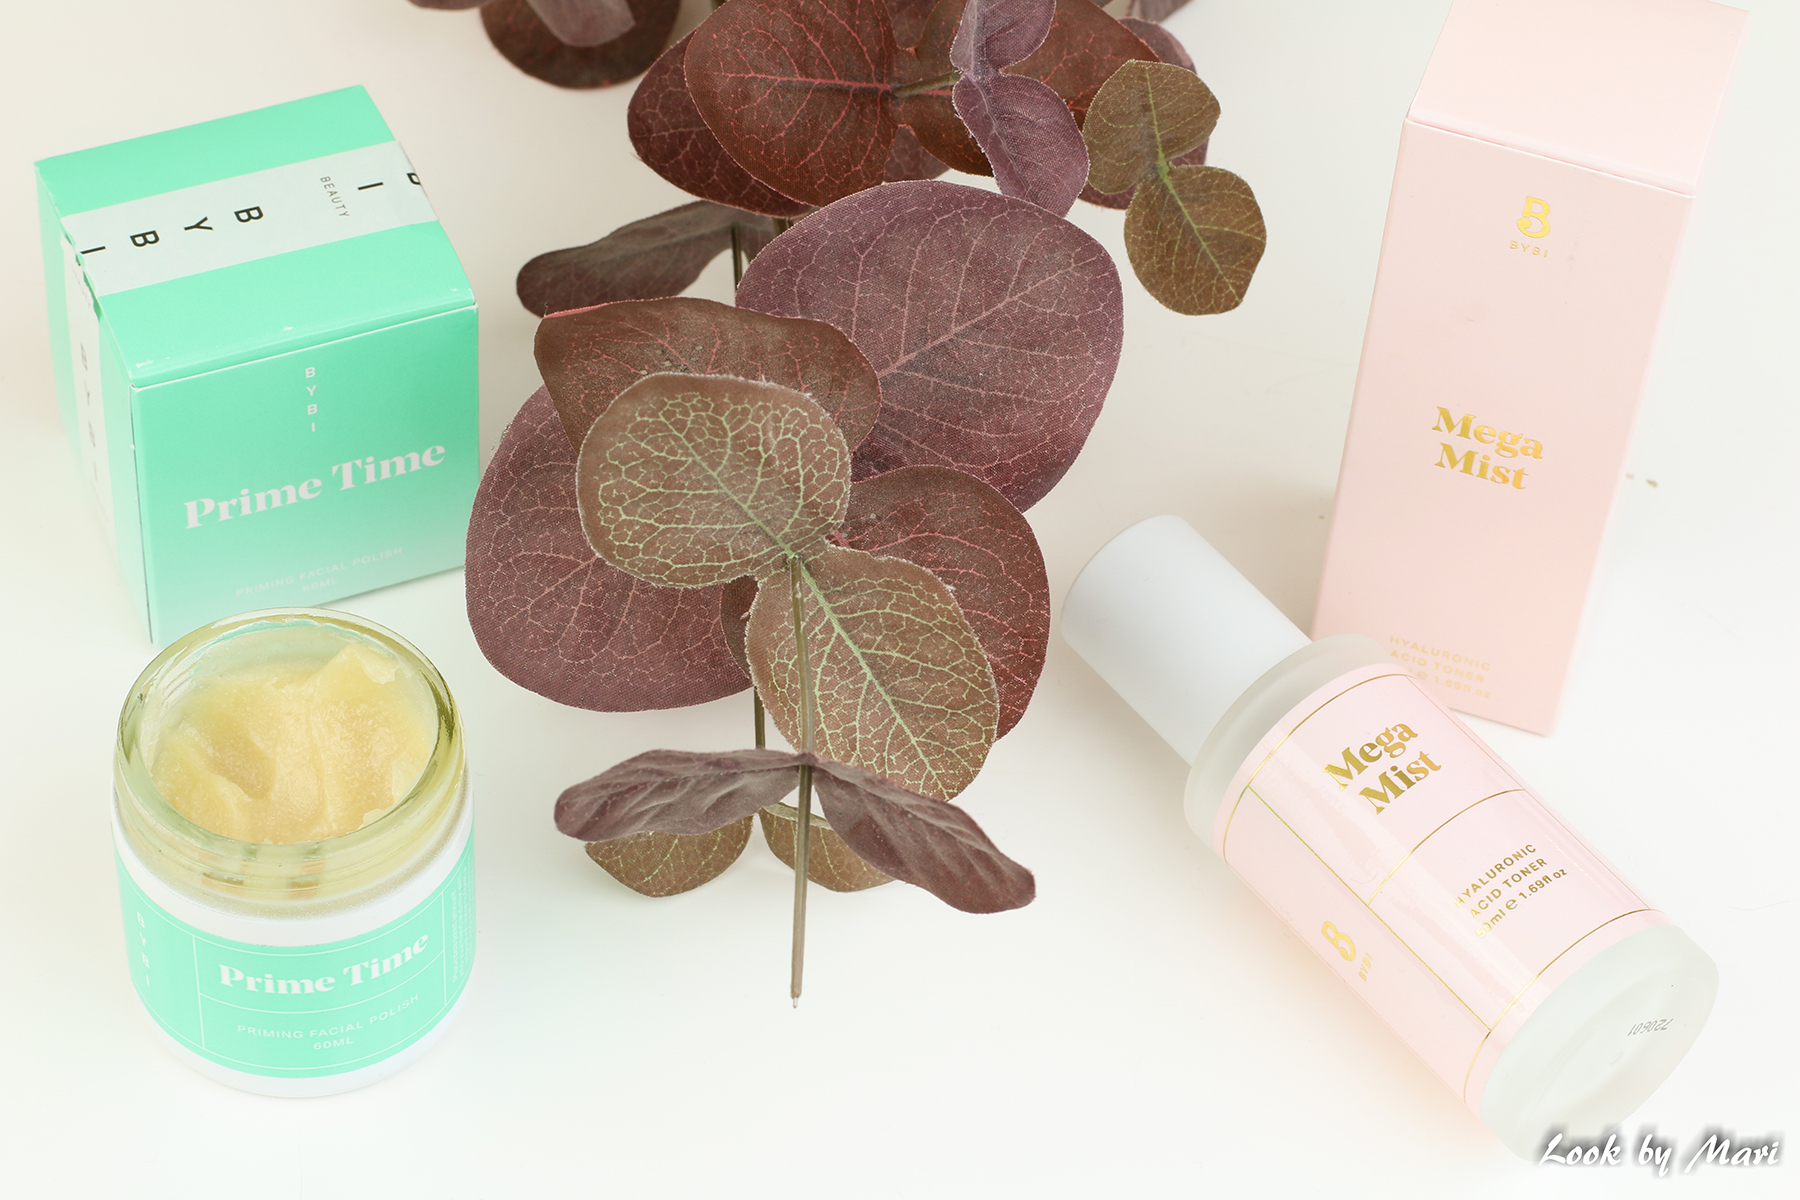 7 bybi prime time priming facial polish review kokemuksia bybi mega mist twistbe.fi